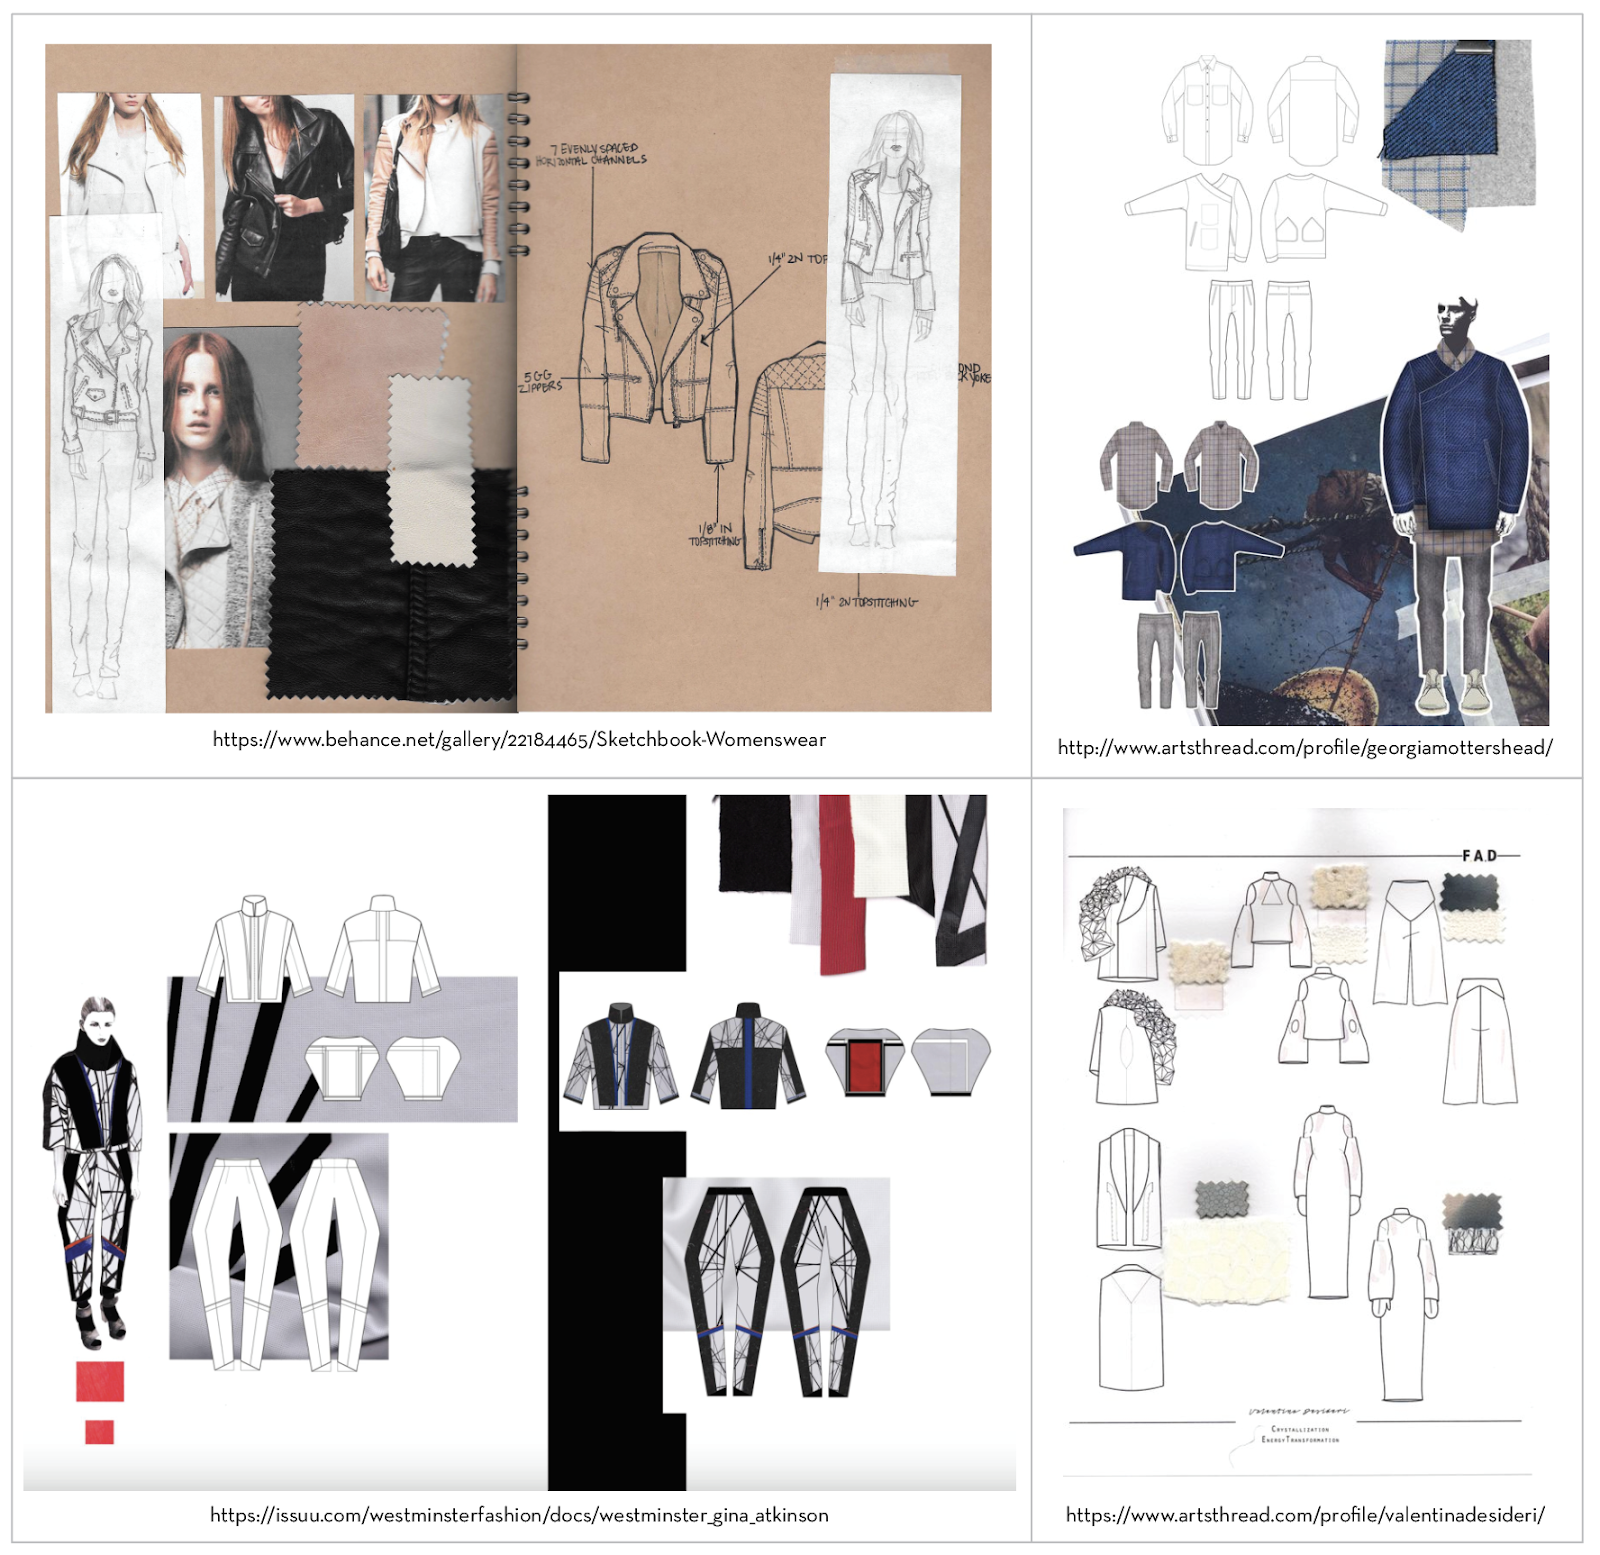 Fashion Design Portfolio Layouts Online Physical Books Do You Need Both Courses Free Tutorials On Adobe Illustrator Tech Packs Freelancing For Fashion Designers